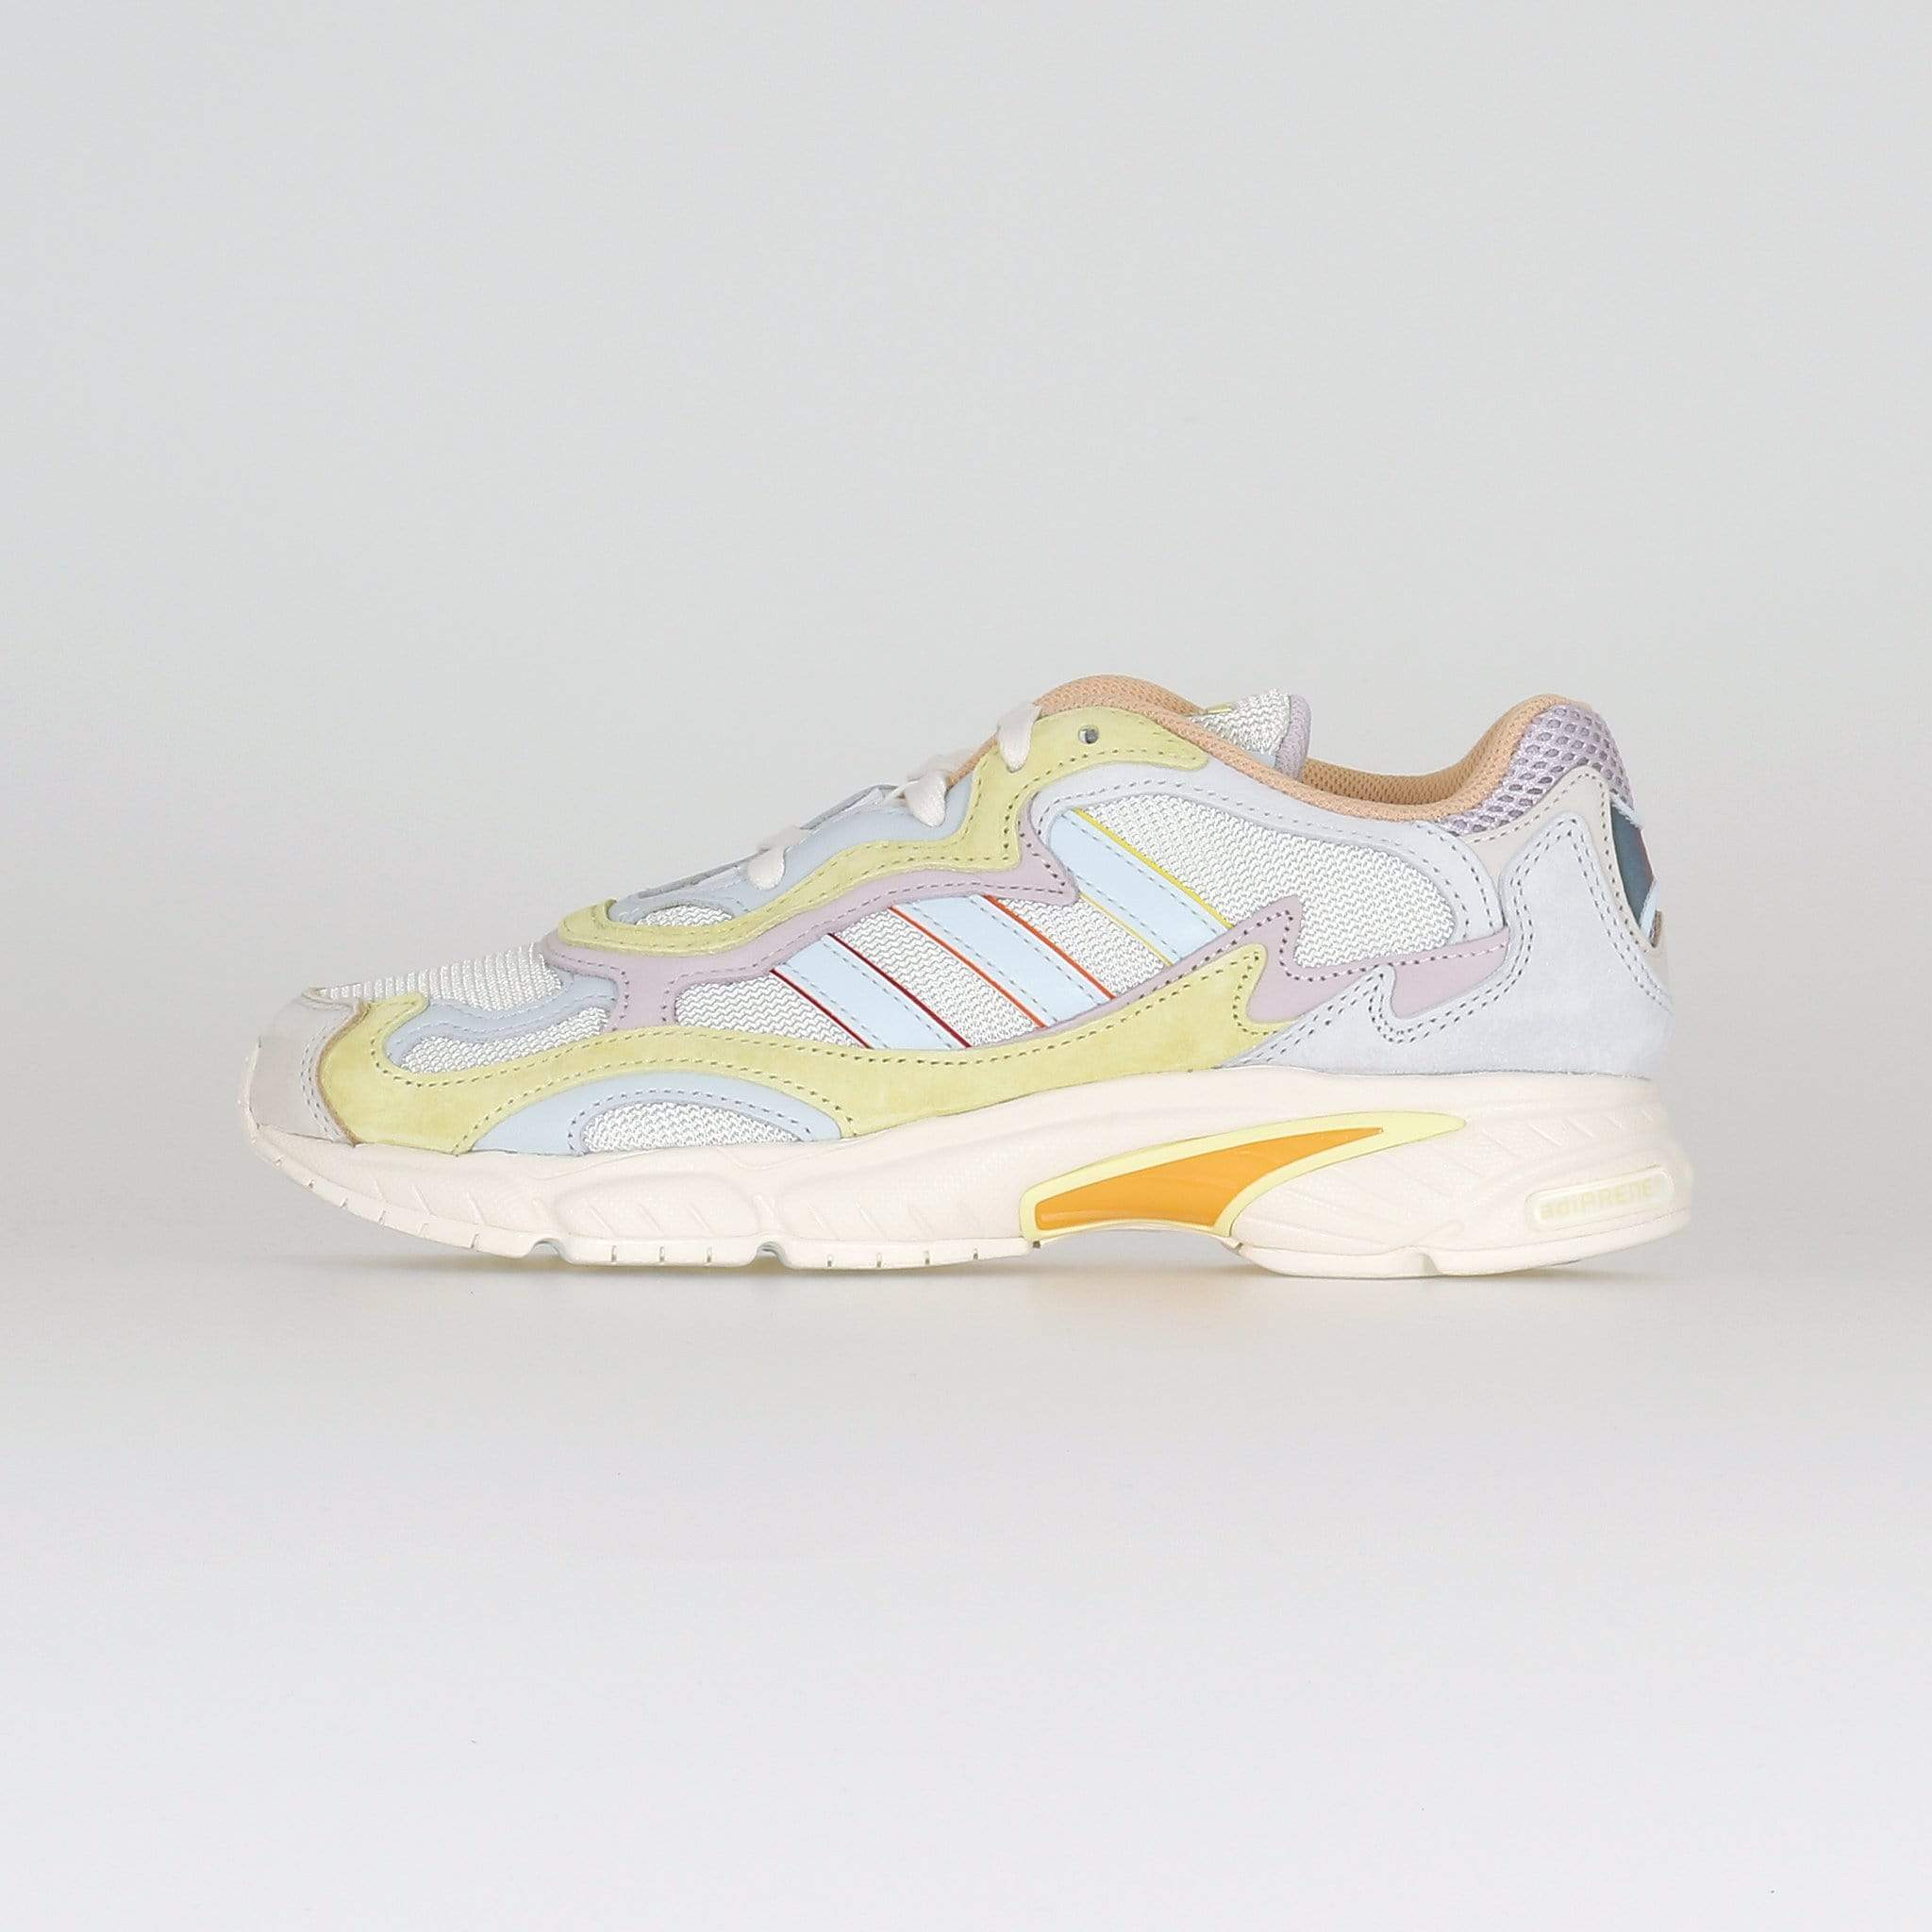 Adidas Originals Temper Run 'Pride' - Off White / Blue Tint / Ice Yellow UK 7 EG10777 4061626900460 Adidas Originals Trainers